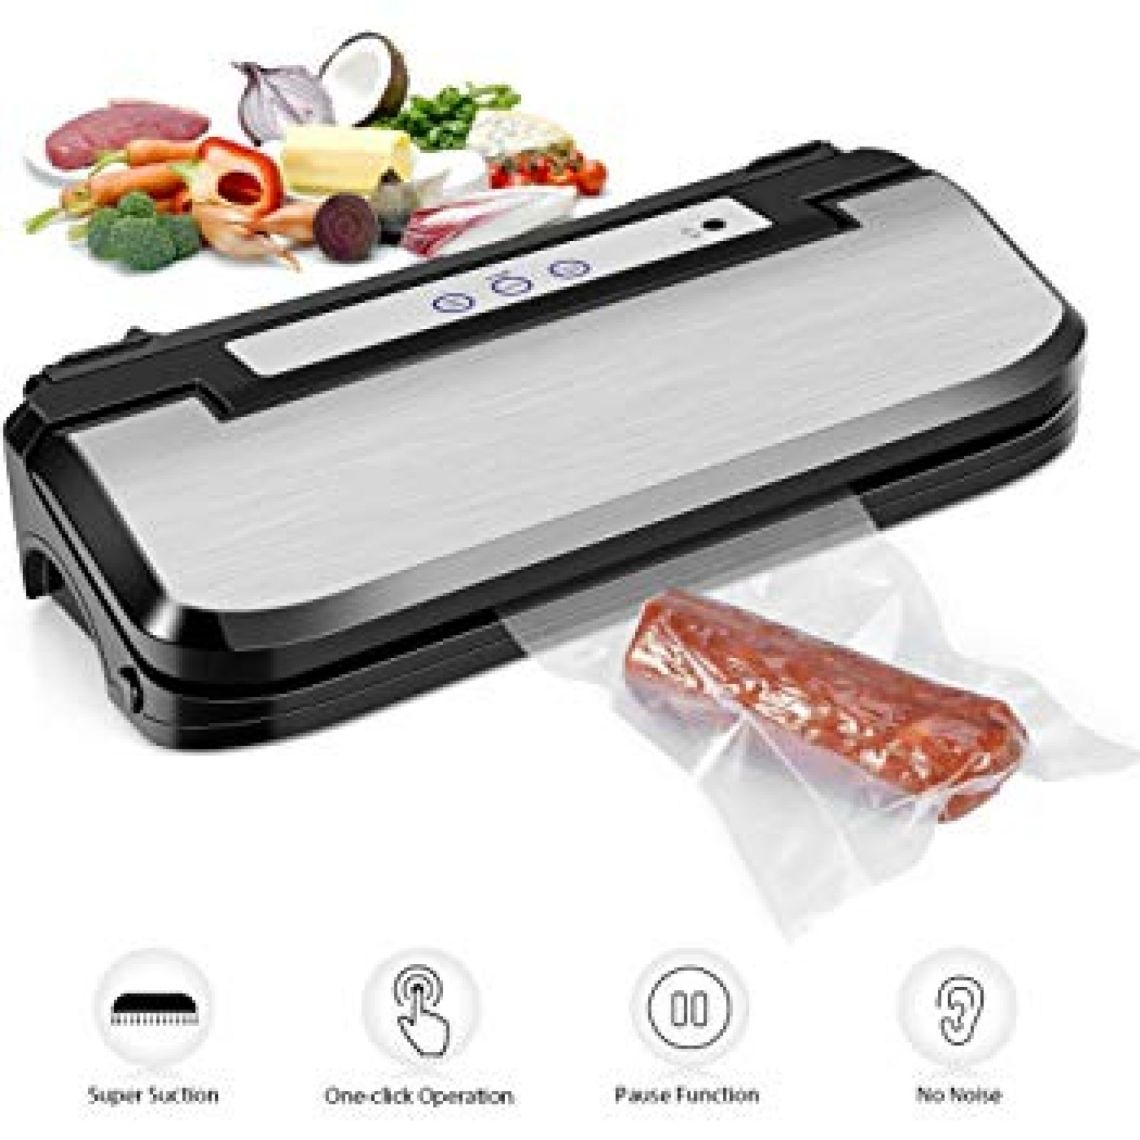 Amazon.com: Vacuum Sealer Machine, Upgraded Ymiko Vacuum Sealer Sous Vide Machine Automatic Vacuum Sealing System, 8 Times Preservation with Manual Pause Function for Vacuum and Seal /Seal, with 15 Bags: Kitchen & Dining